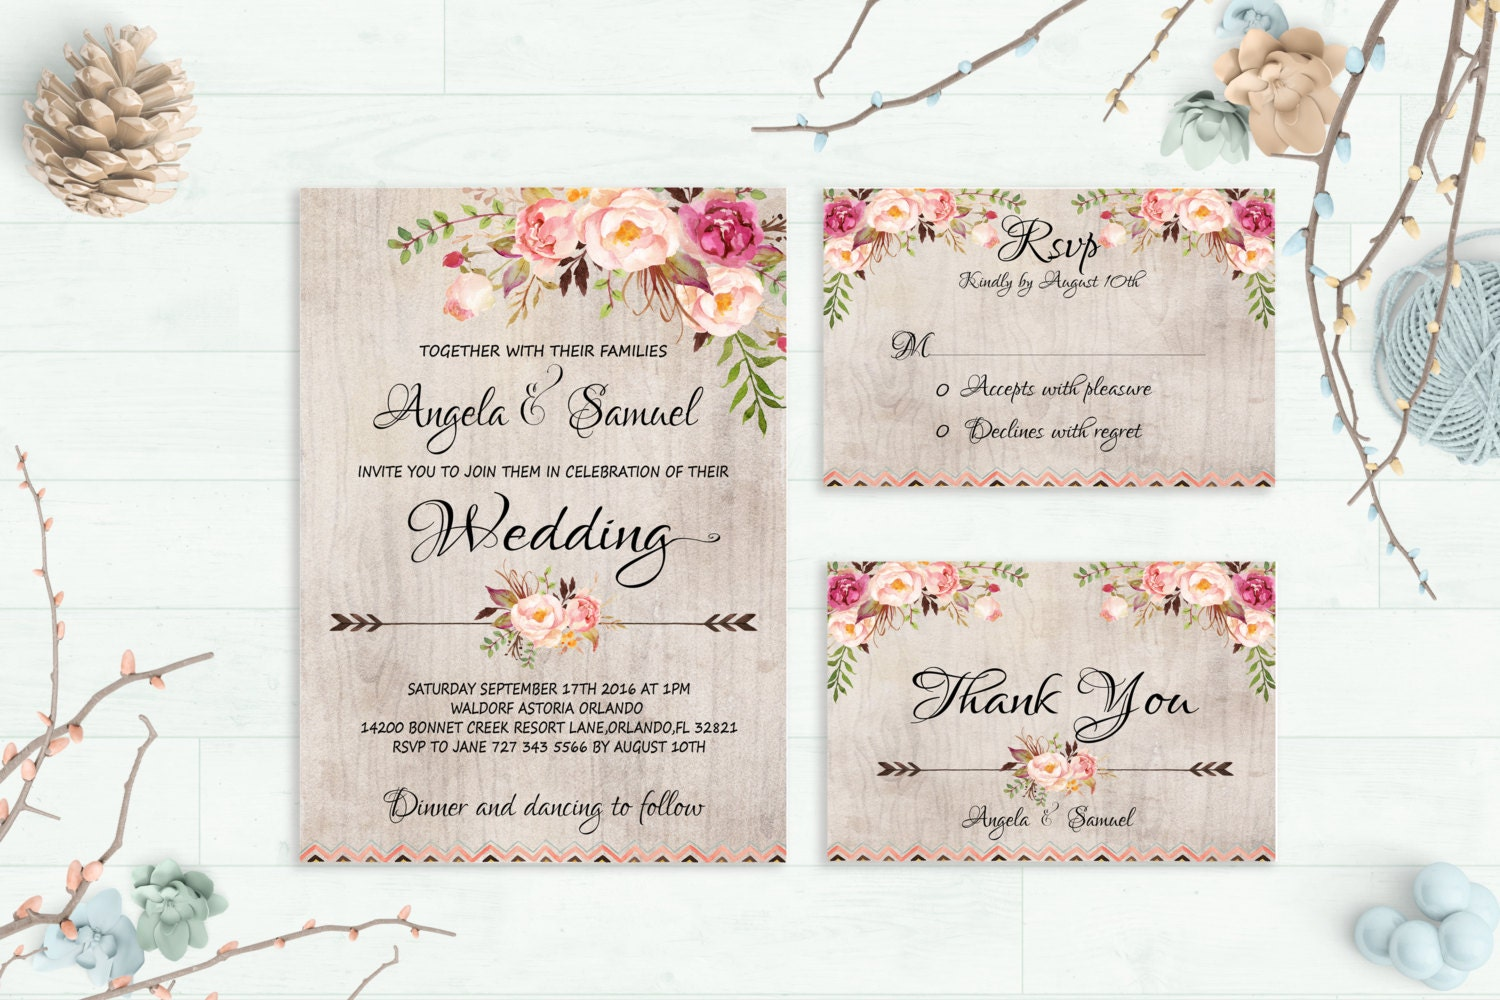 Wedding Invitation Creator Free Online: Rustic Wedding Invitation Printable Wedding By